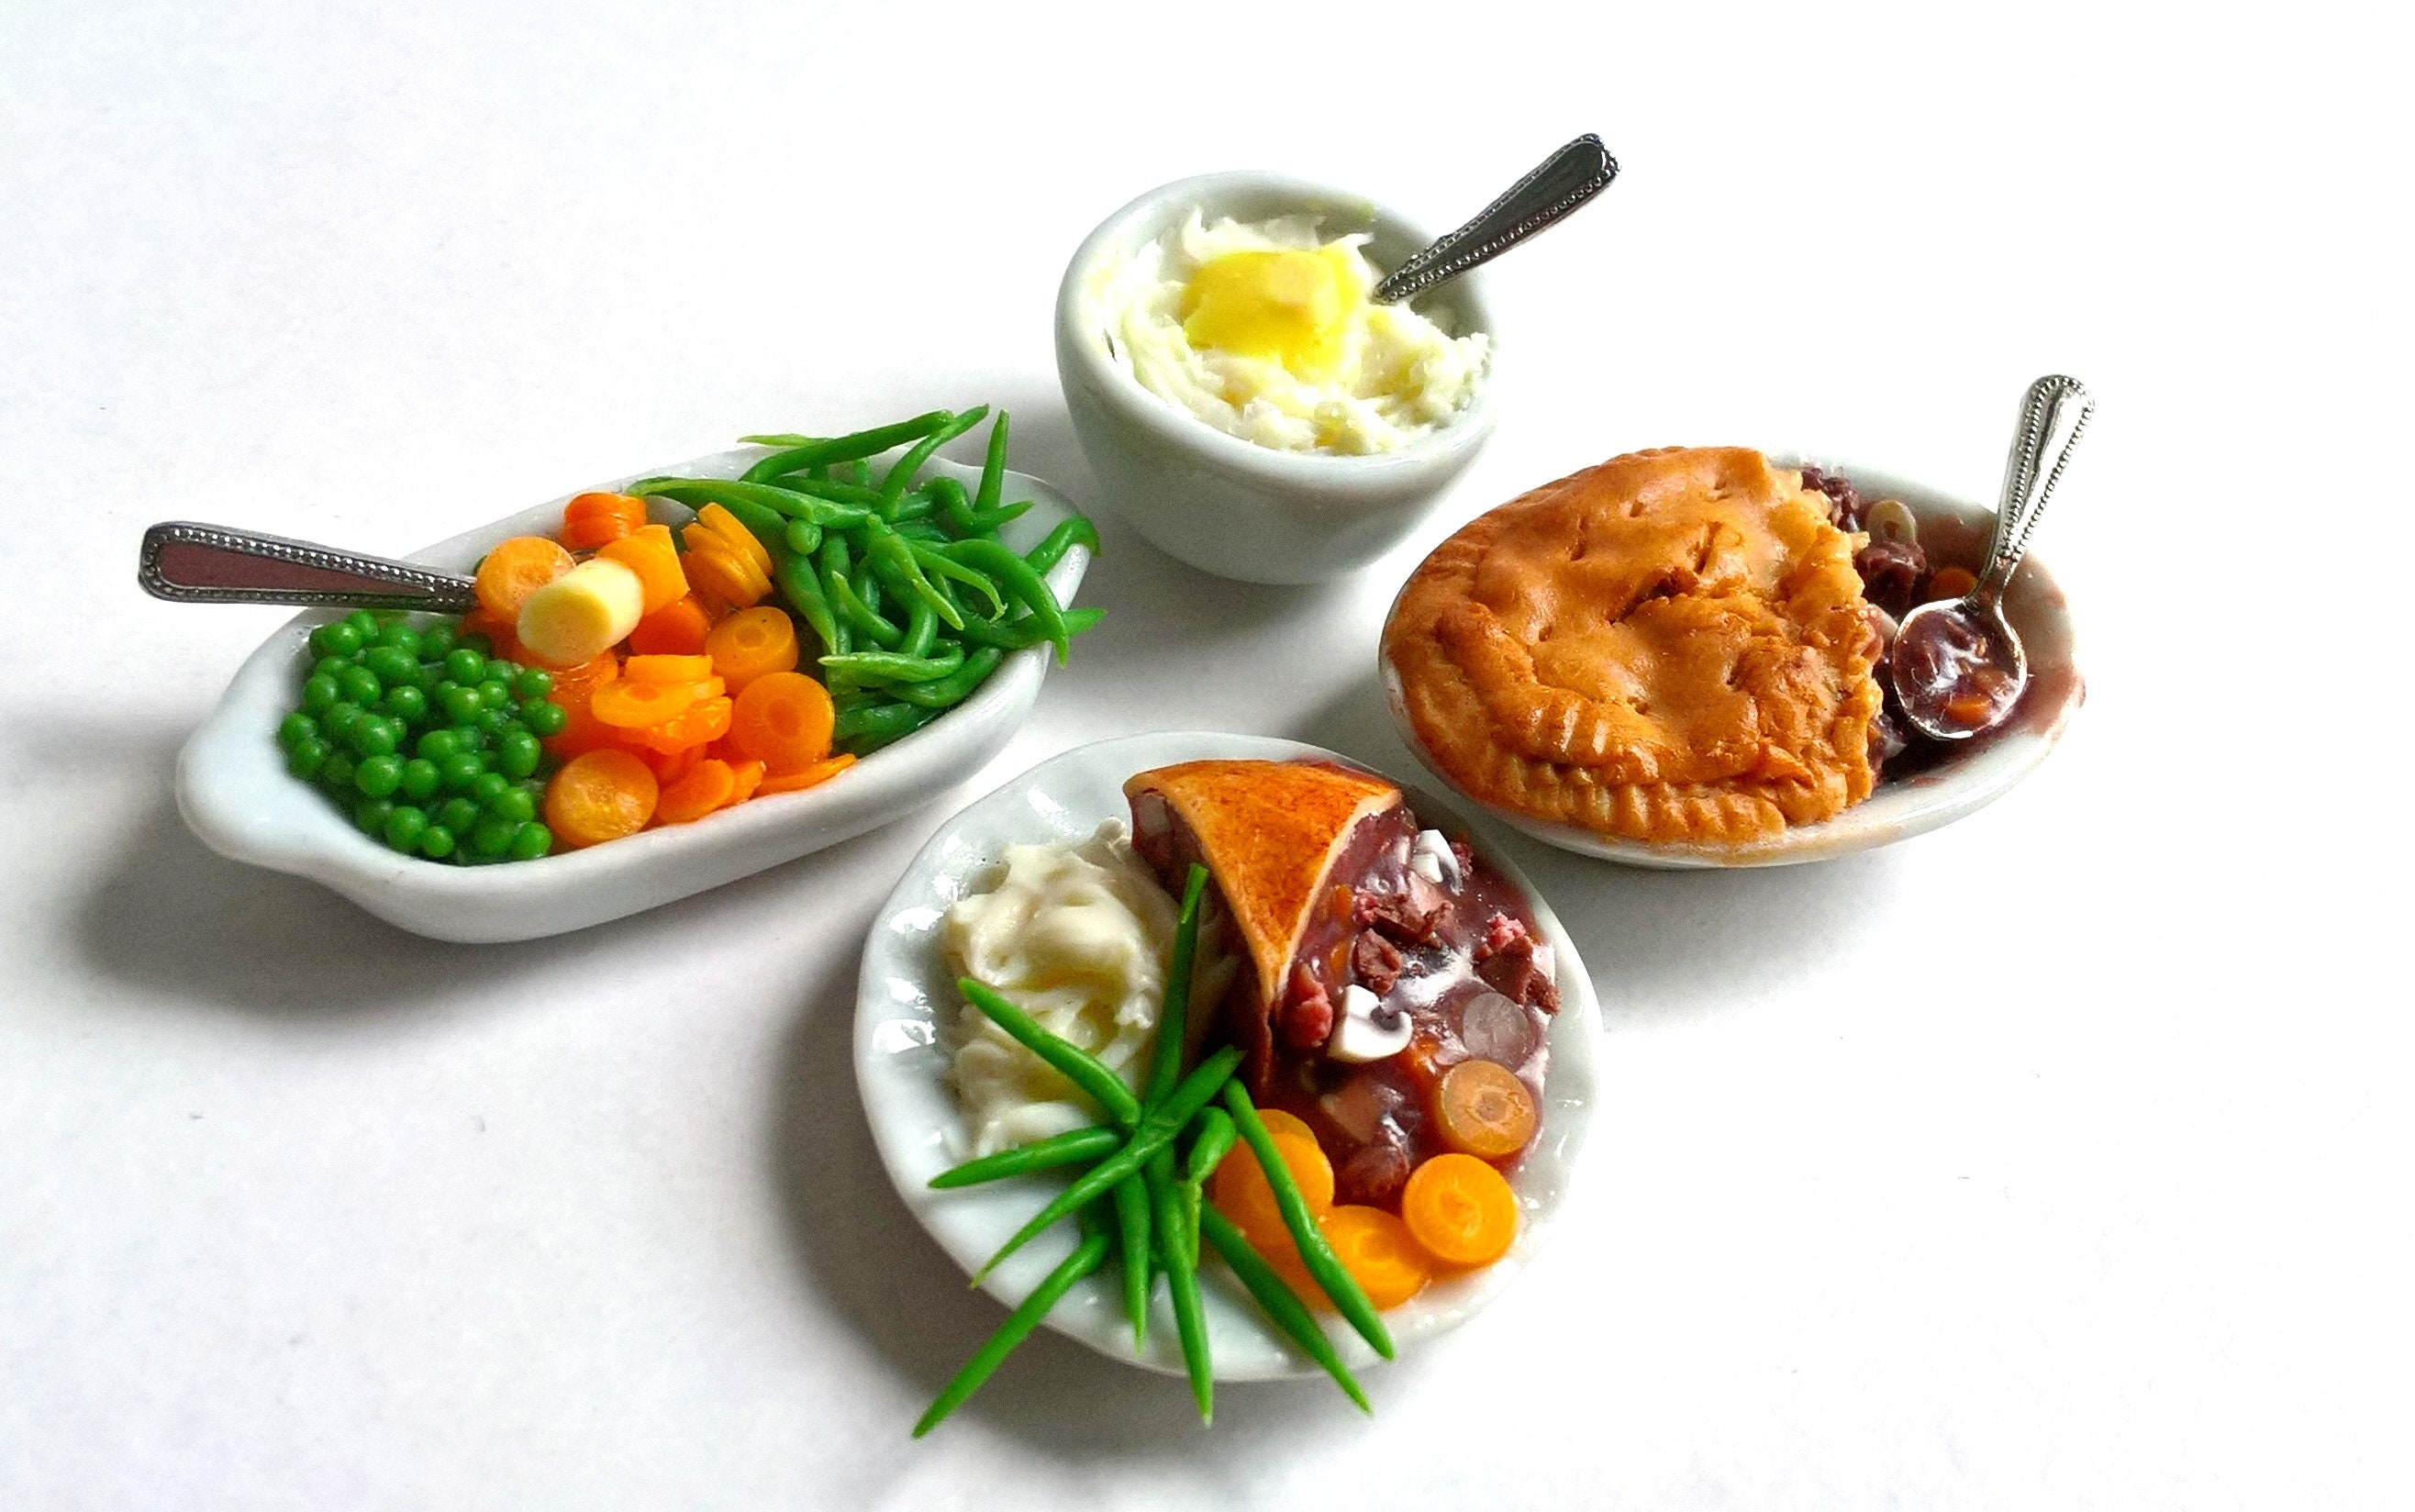 Dolls House Food: Miniature Food REALISTIC Steak Pie ...